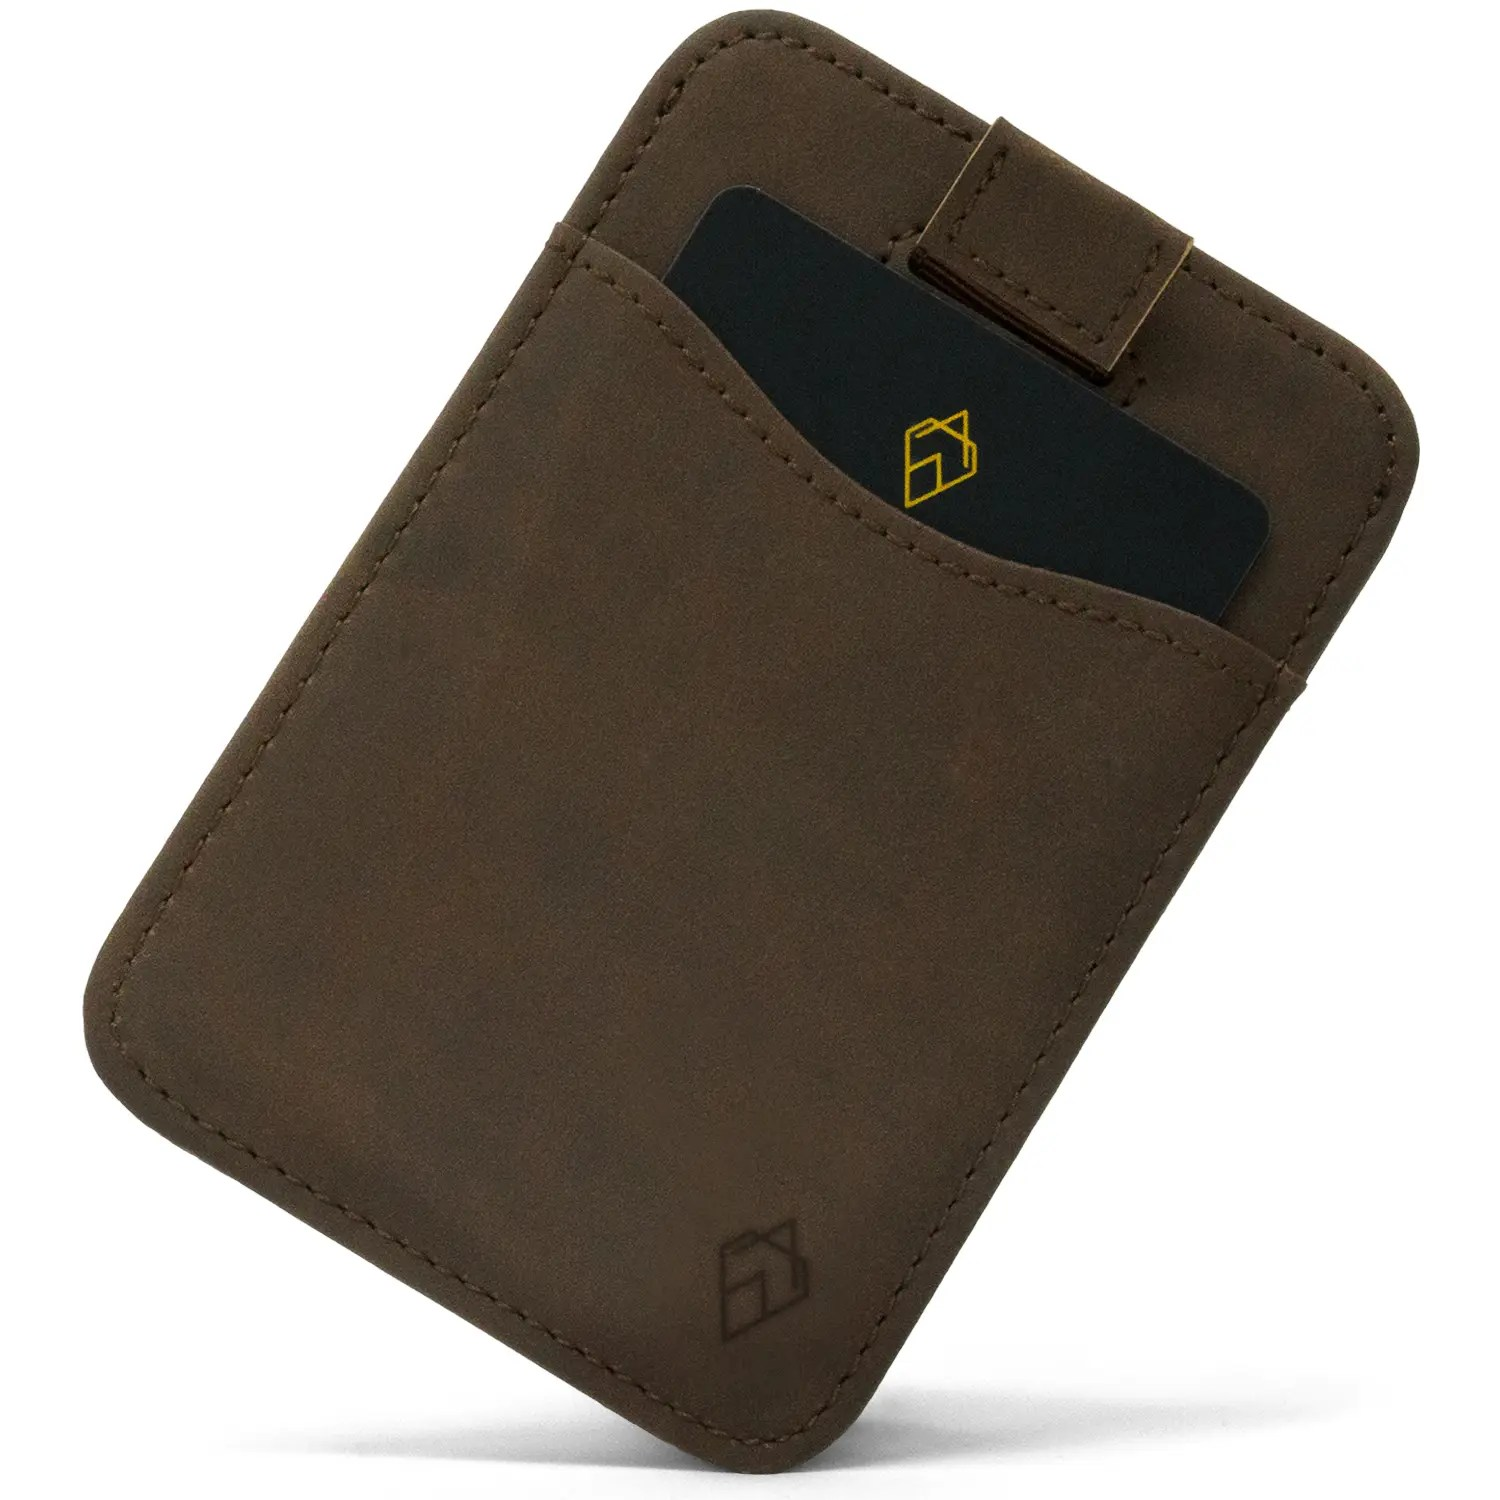 Brown RFID blocking credit card holder wallet with Pull Tab